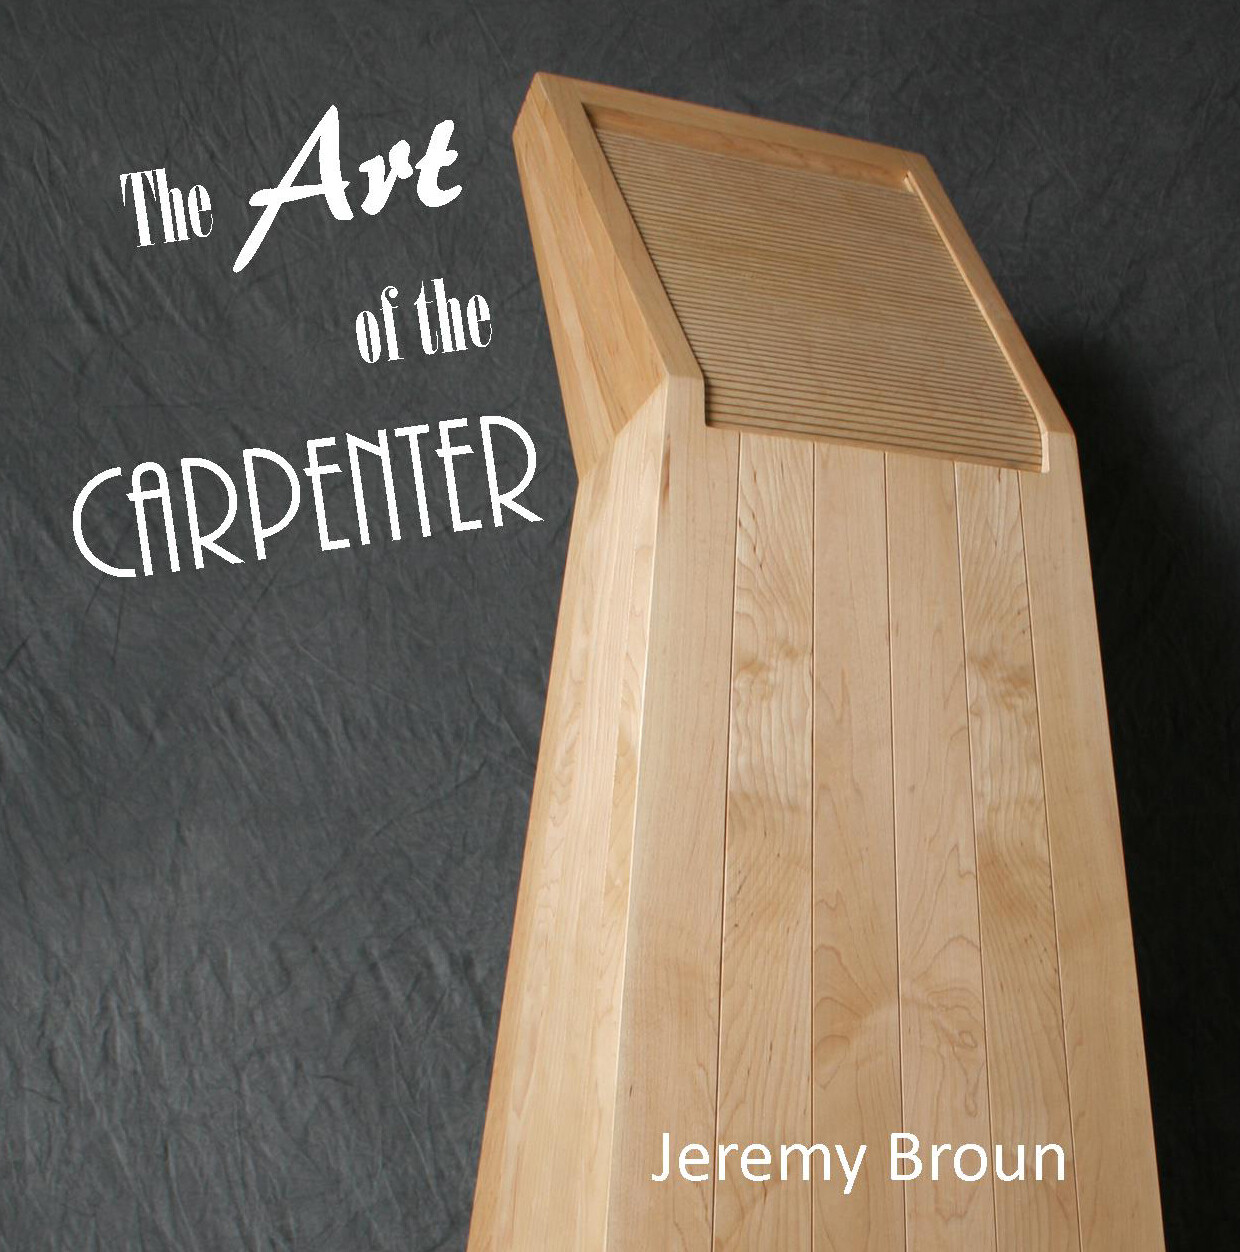 The Art of the Carpenter - a beautiful hardback book showcasing over half a century of an innovative British woodworker across a broad spectrum of woodworking disciplines